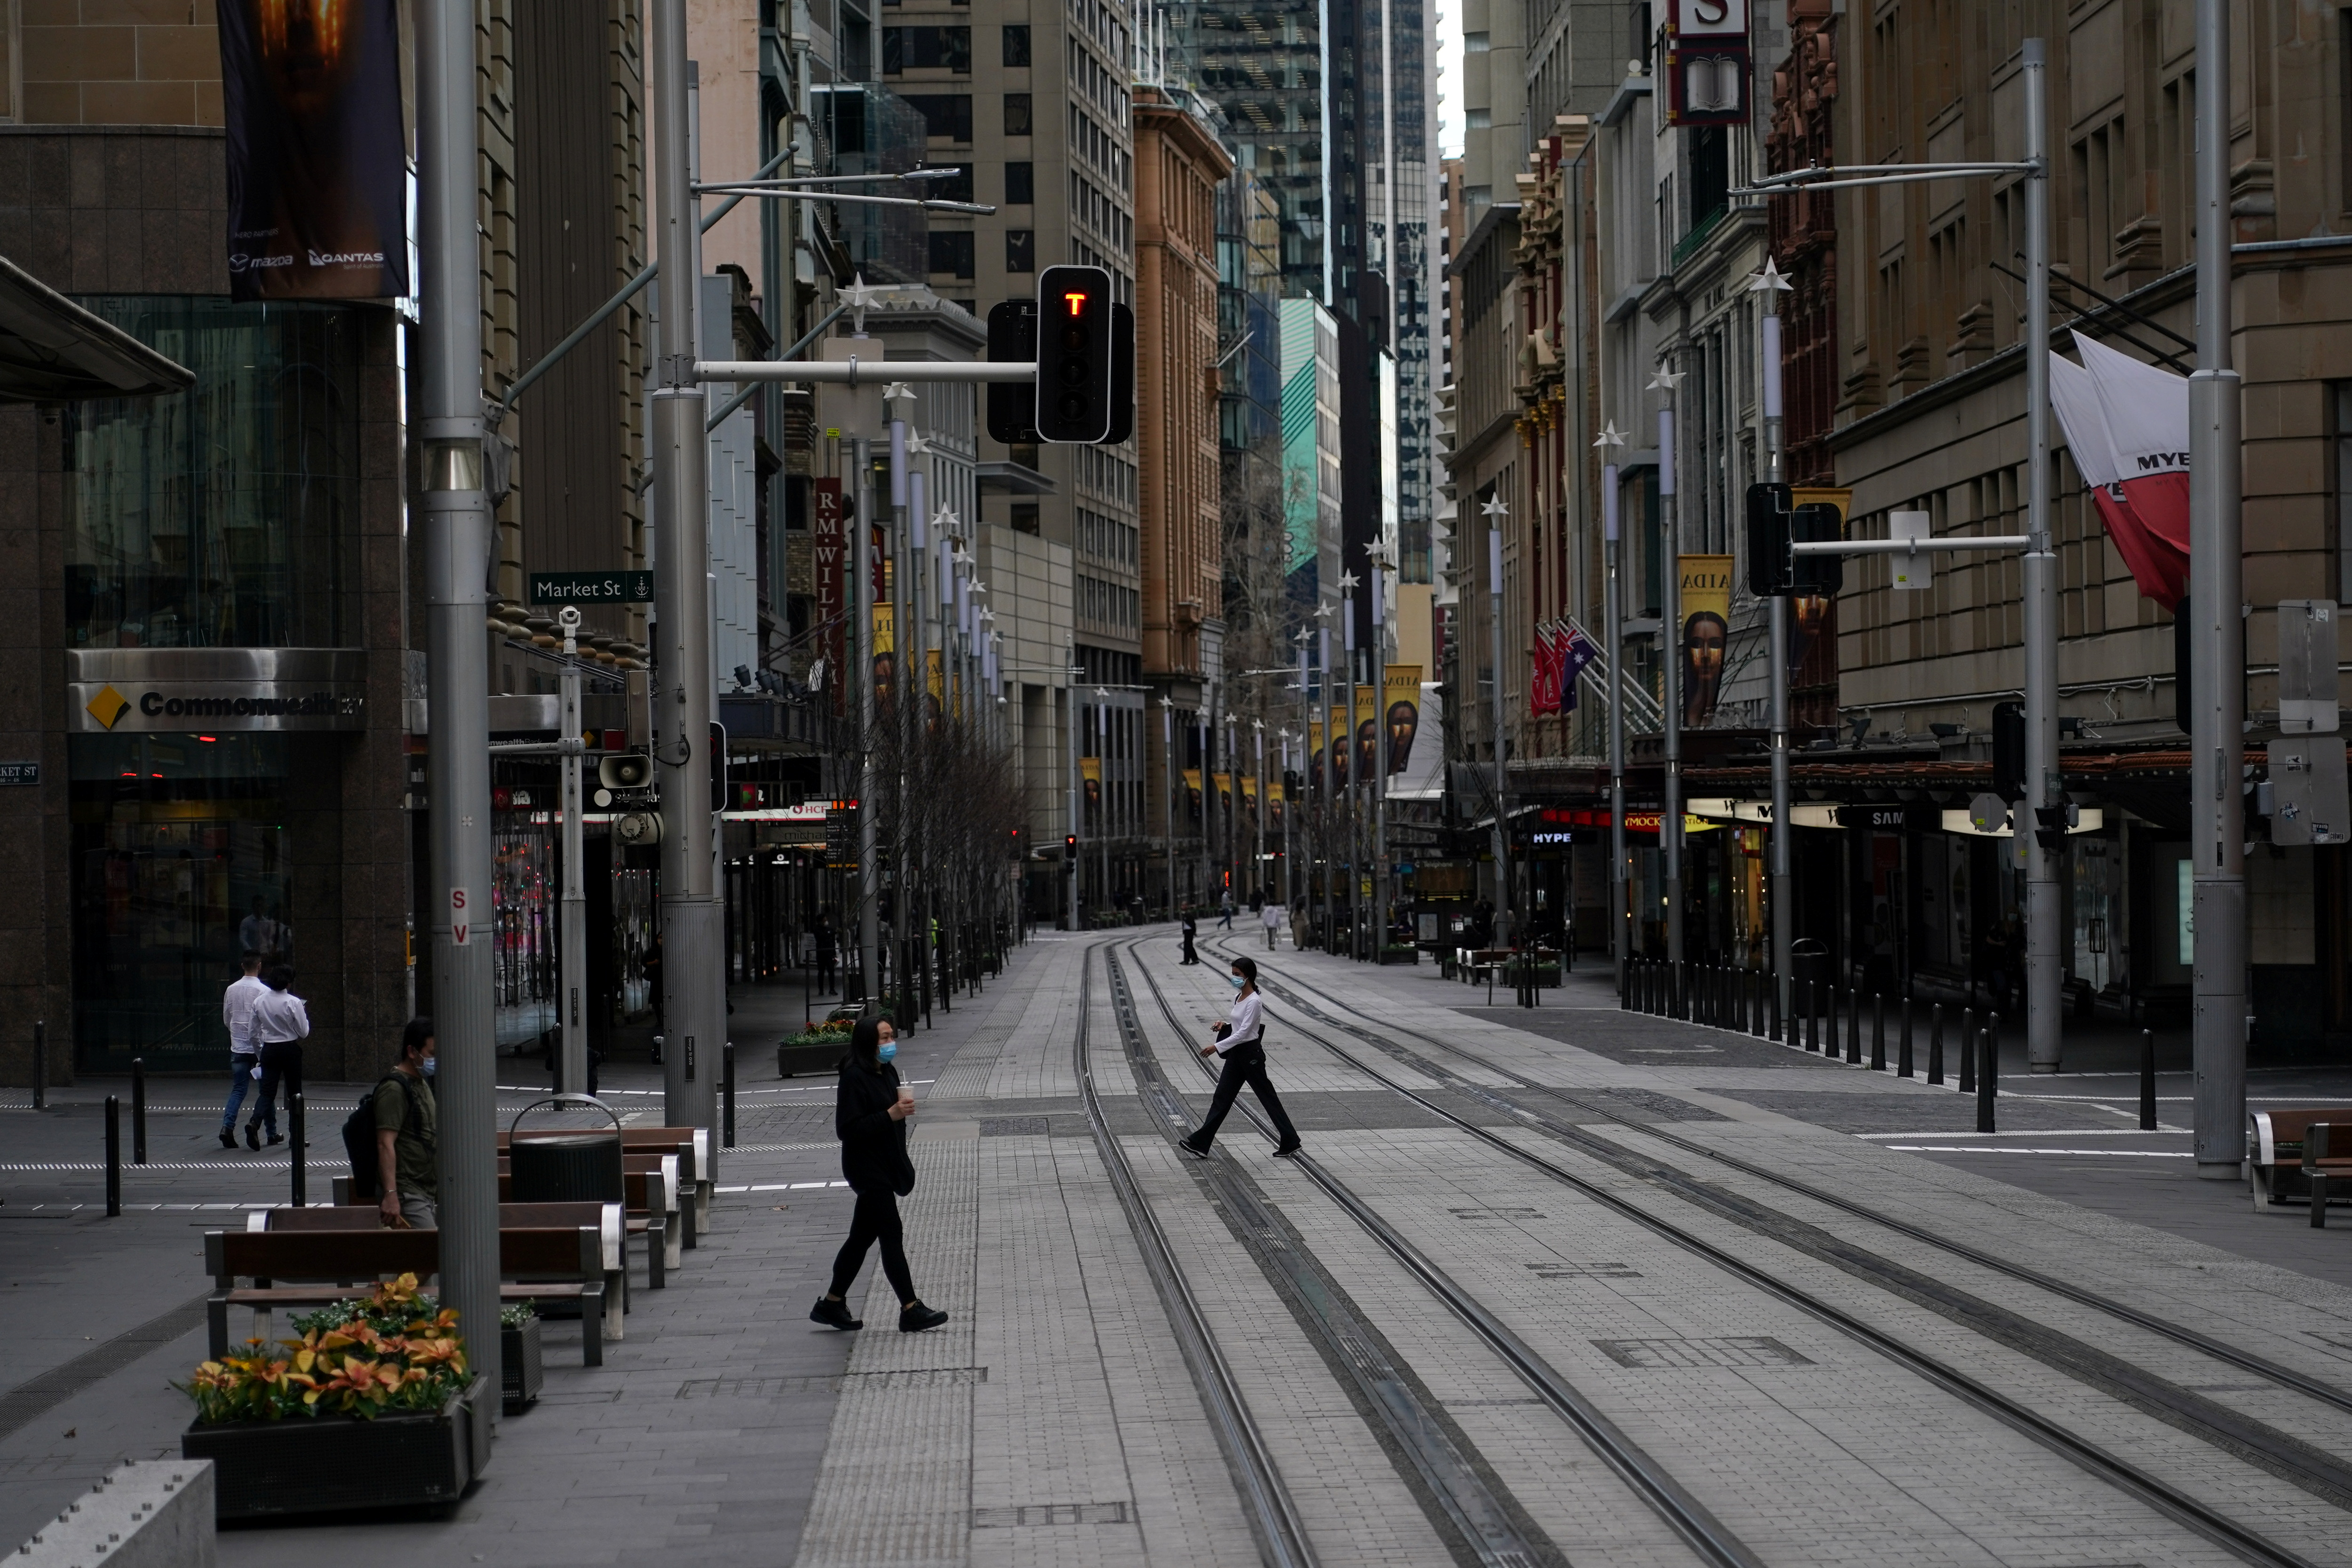 People in protective face masks walk through the quiet city centre during a lockdown to curb the spread of a coronavirus disease (COVID-19) outbreak in Sydney, Australia, July 28, 2021.  REUTERS/Loren Elliott